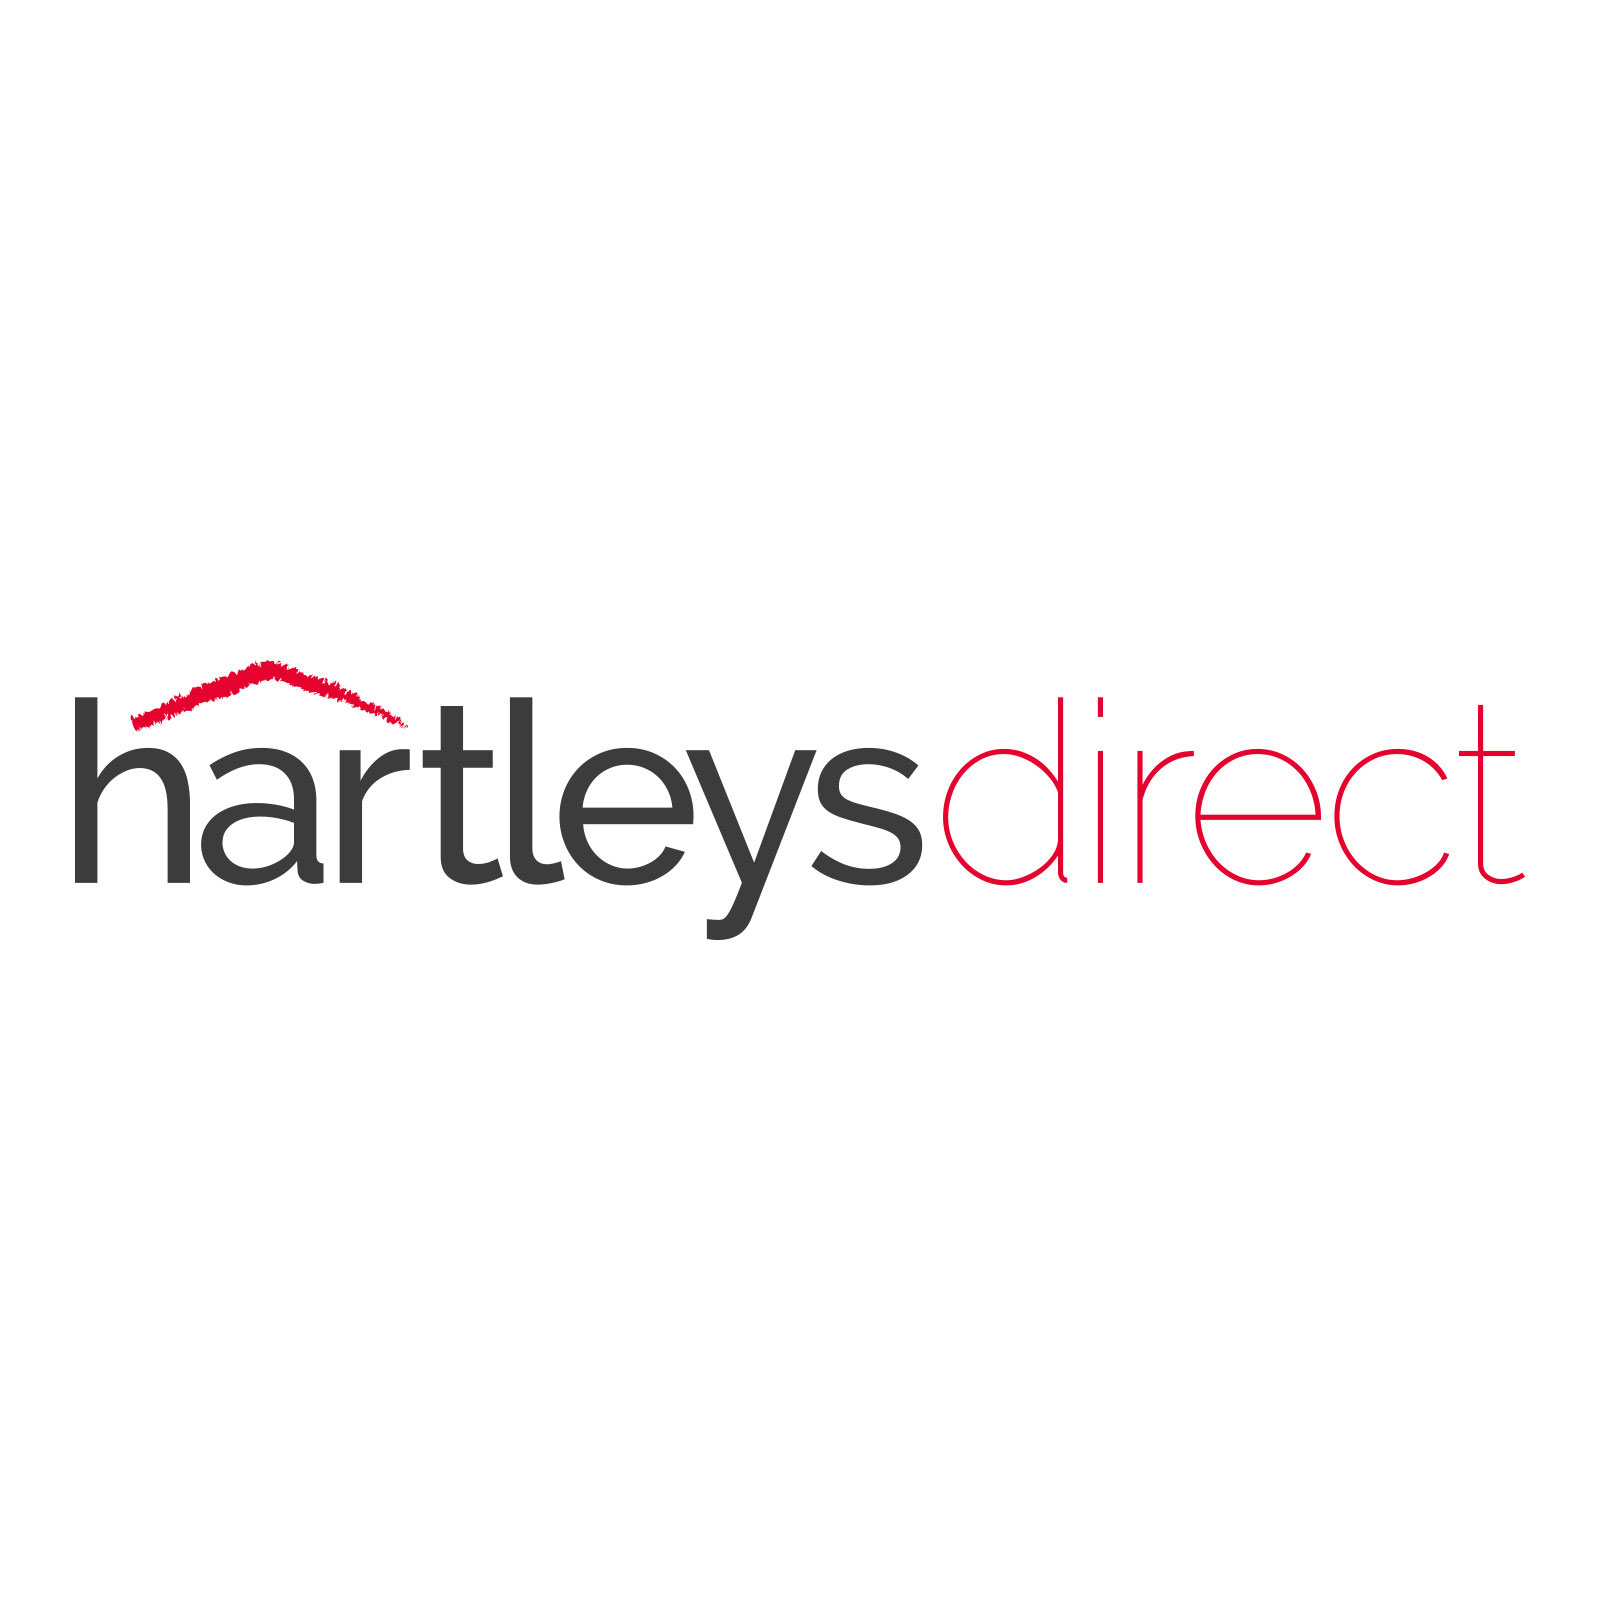 Hartleys-150cm-5-Tier-Adjustable-Wire-Shelving-Units-on-White-Background.jpg